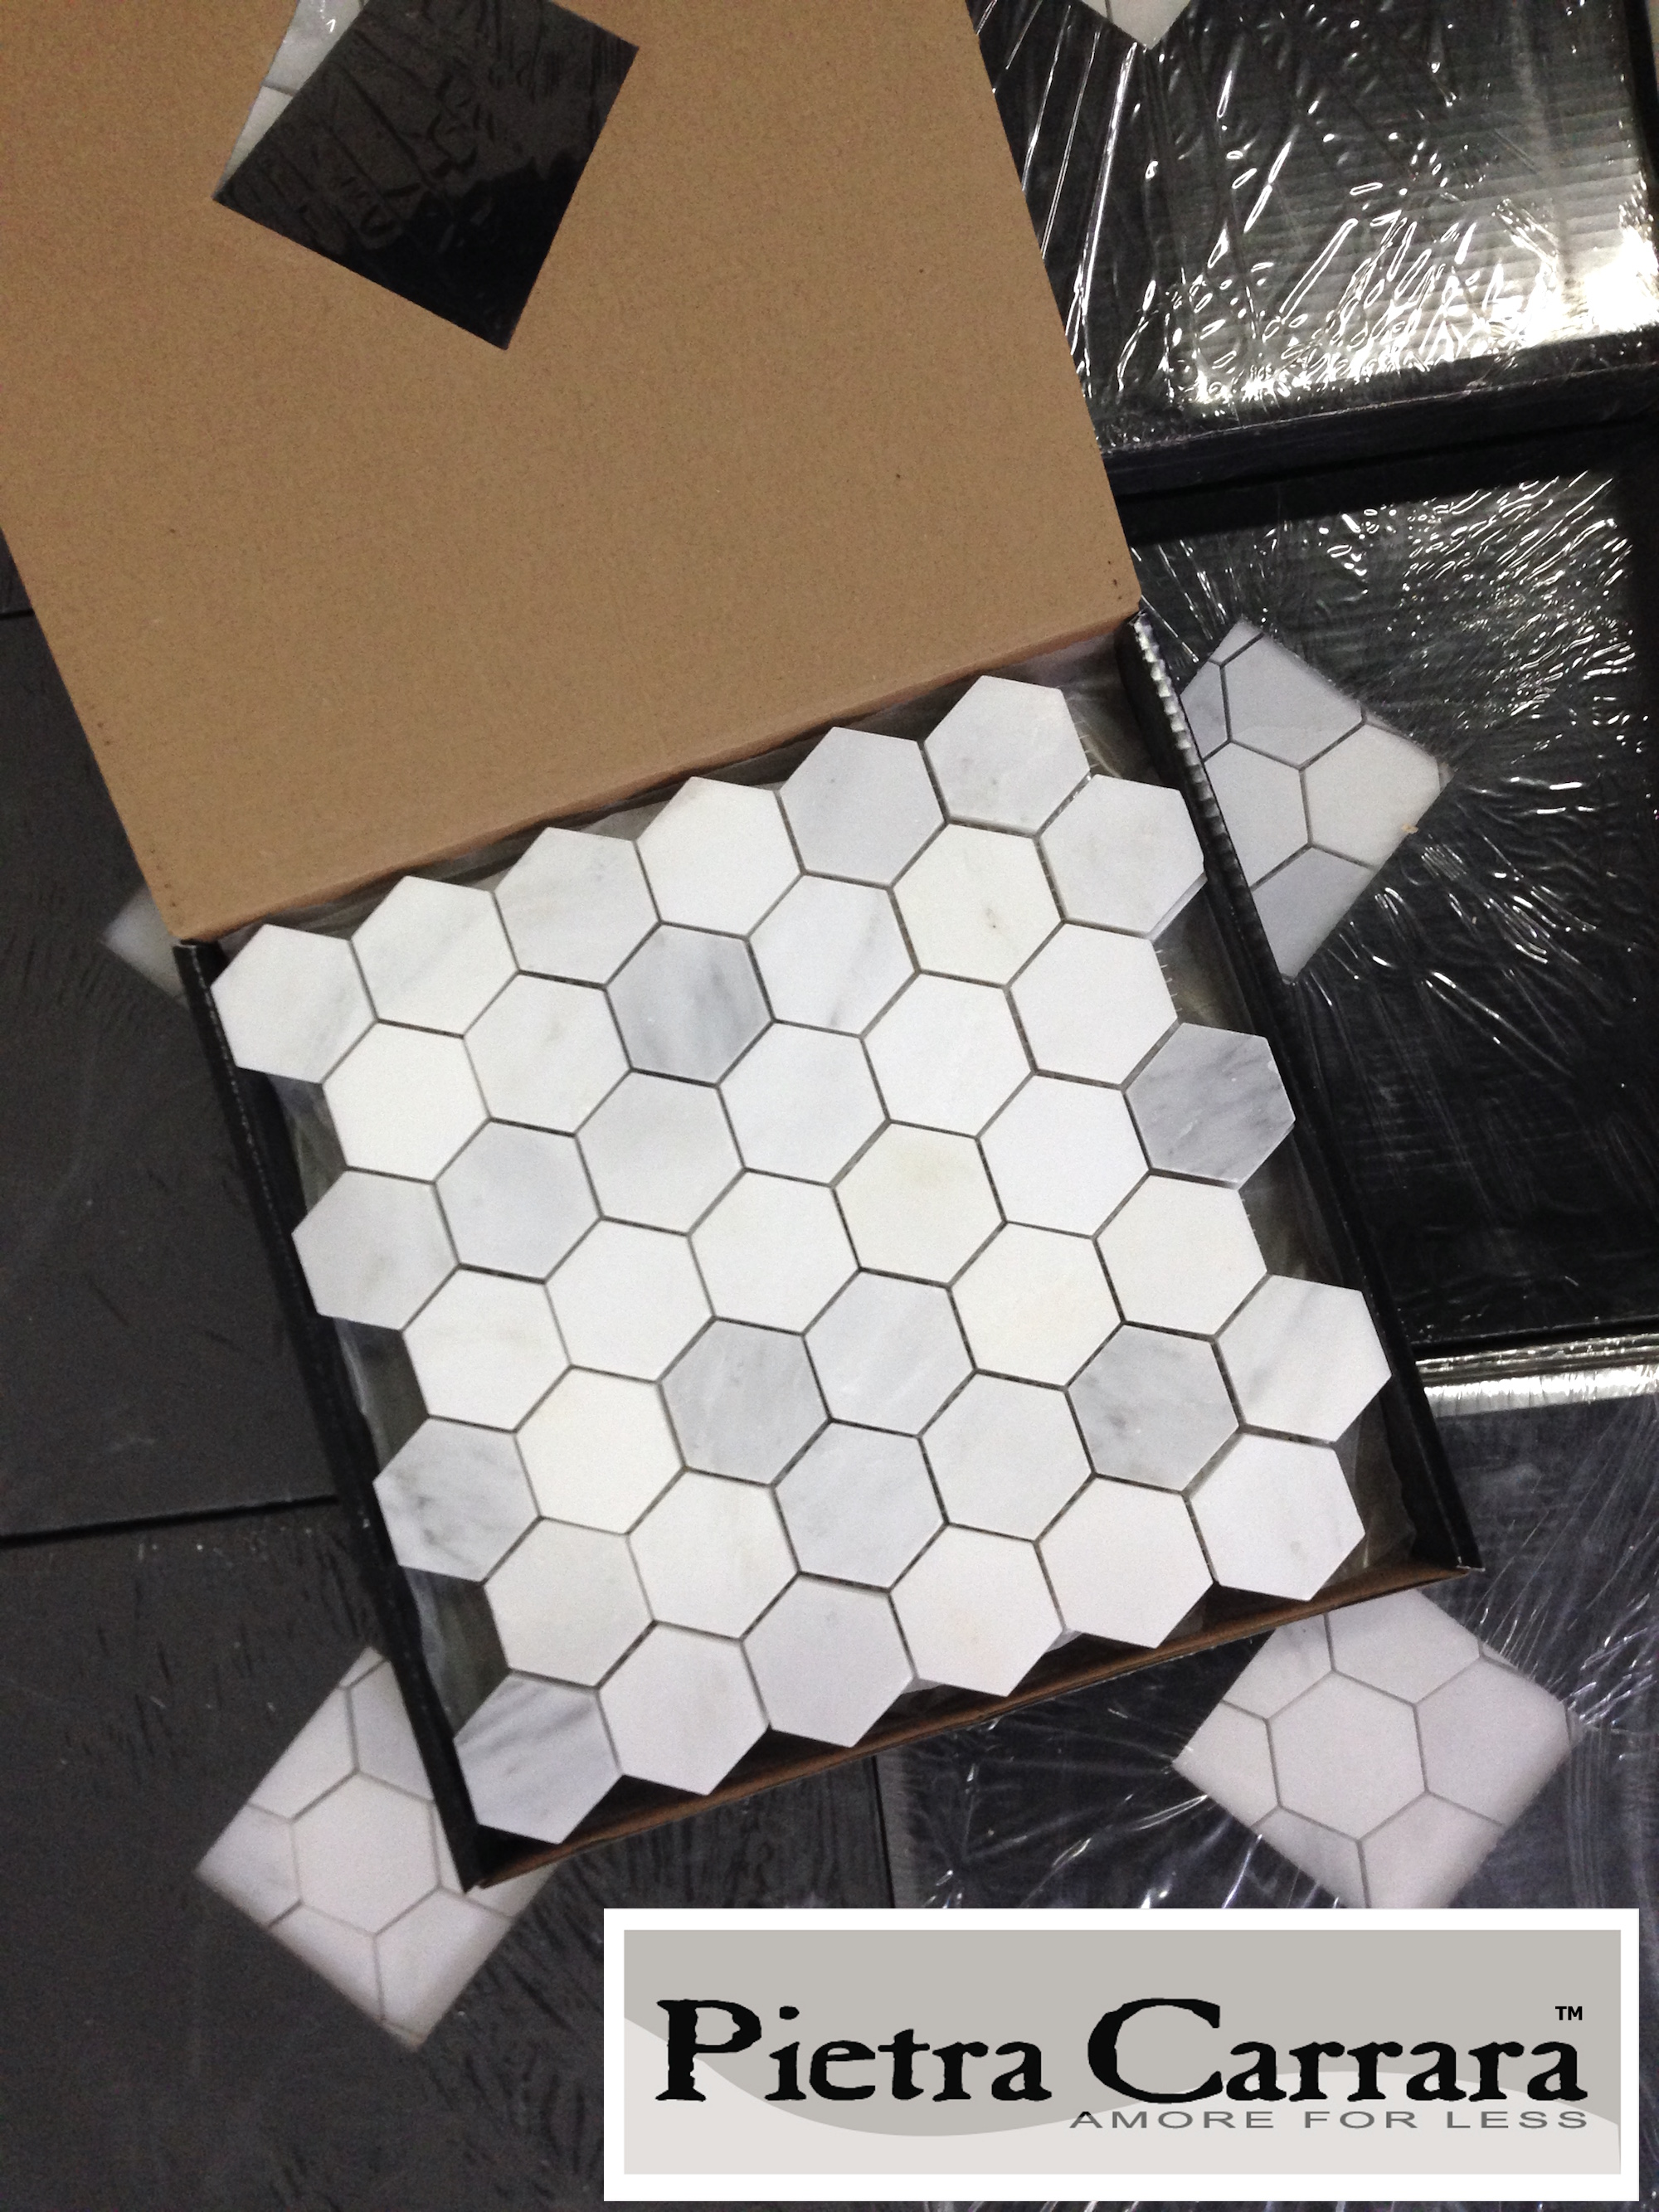 Carrara Pietra 2%22 Hexagon